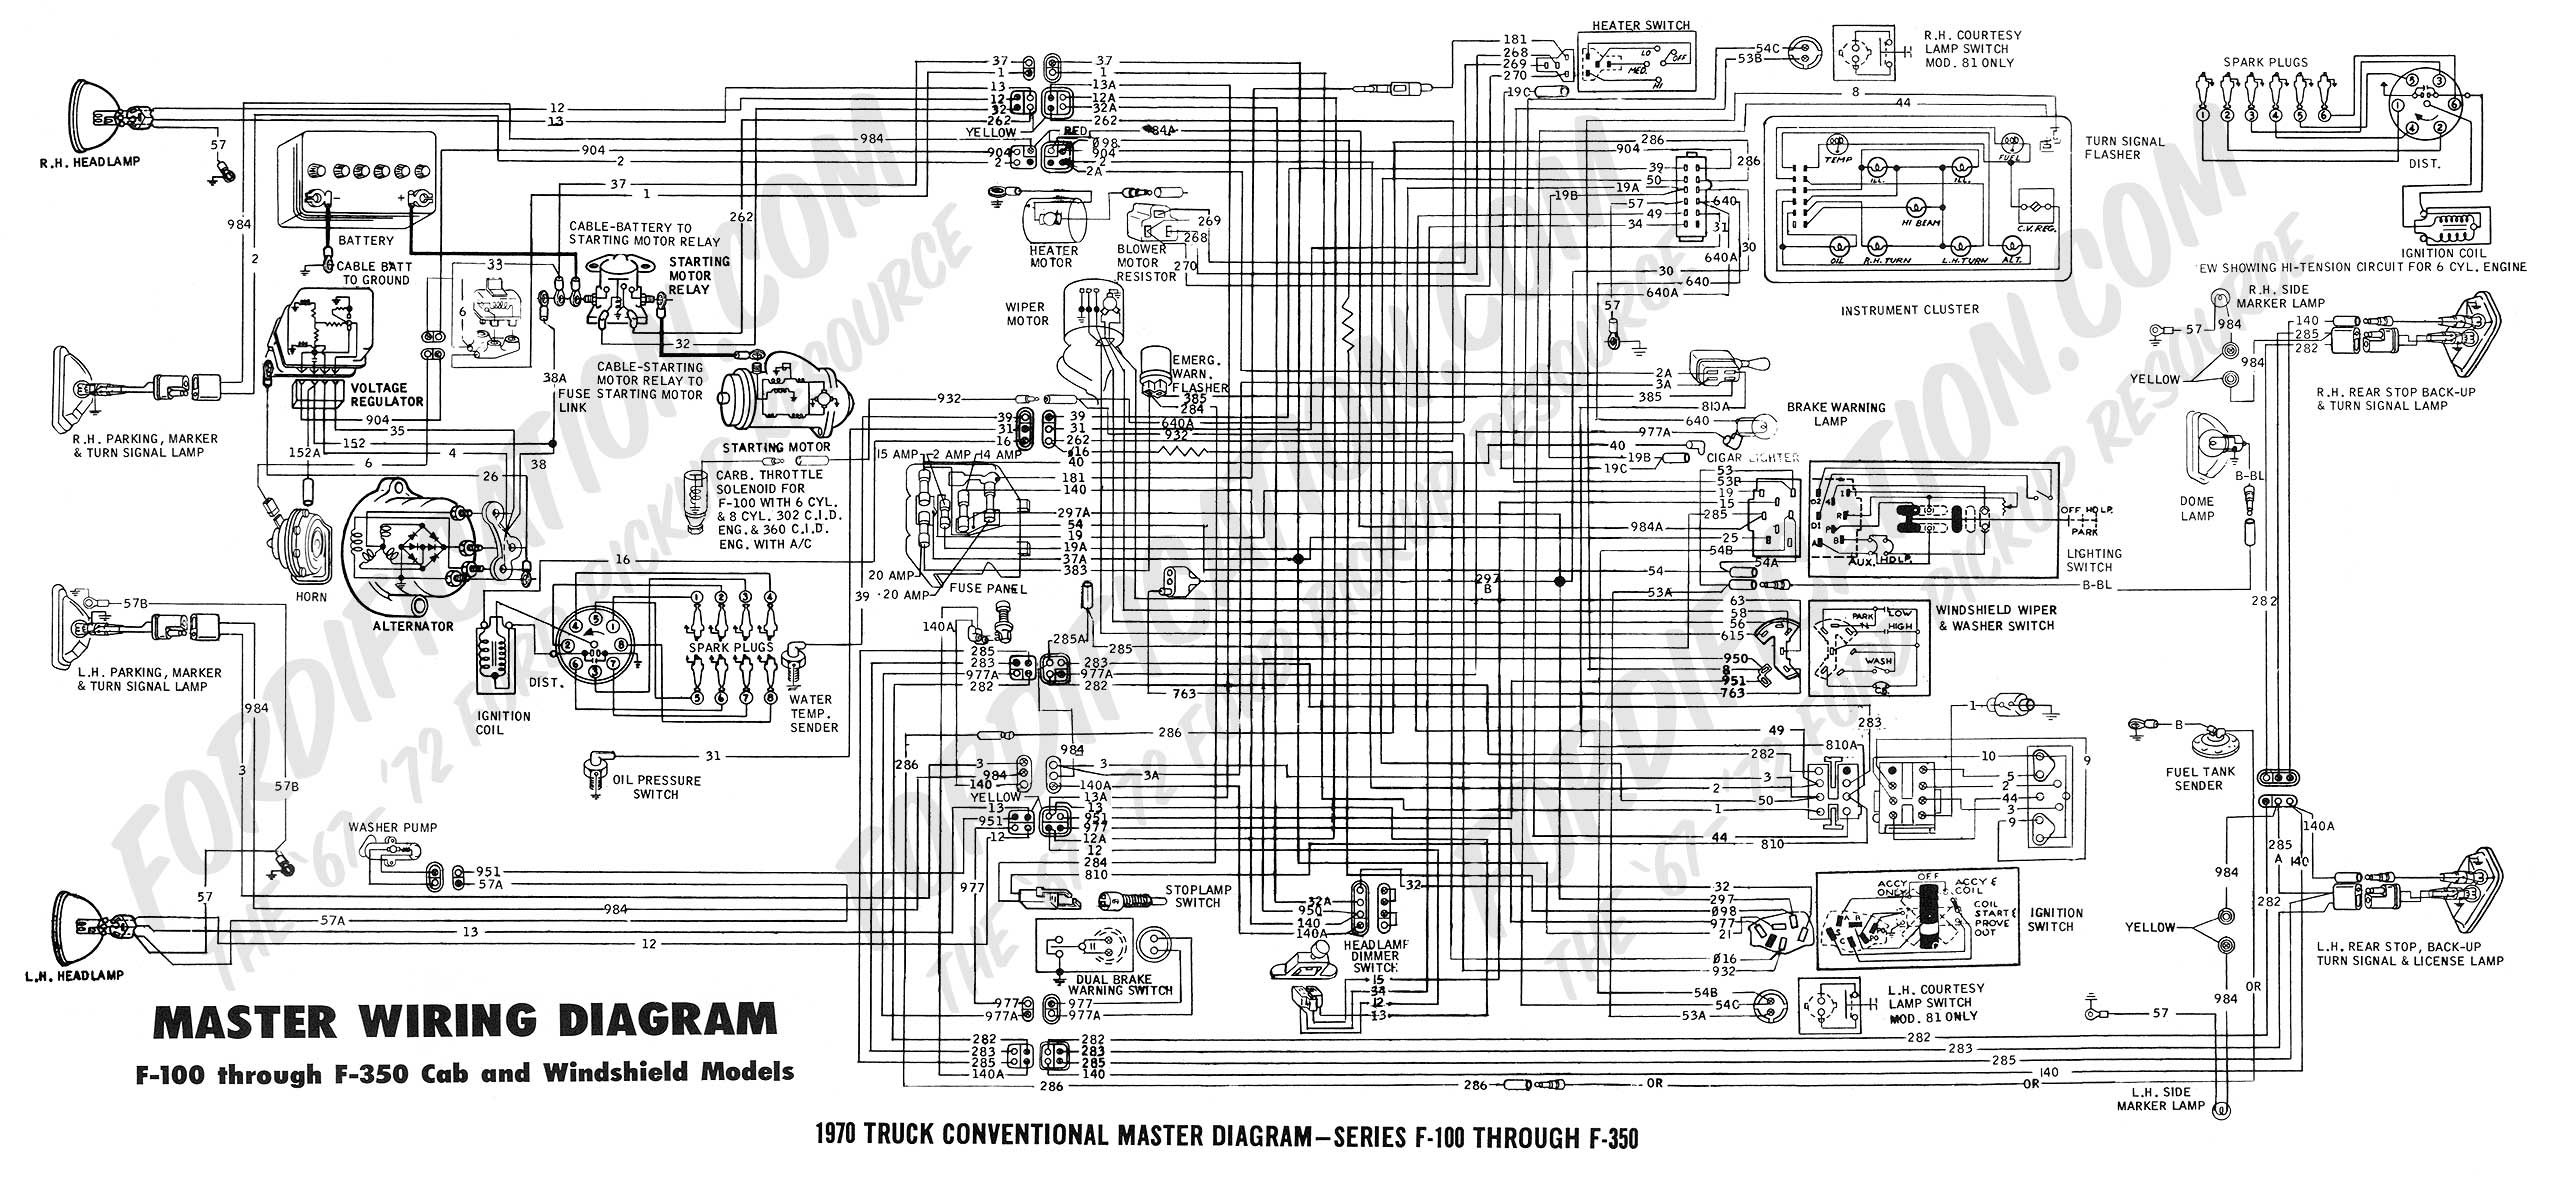 94 f150 distributor wiring diagram wiring library 1978 Ford Thunderbird Vacuum Diagram 1979 ford wiring harness wiring diagram schemes trailer wiring harness diagram 78 f150 ignition wiring harness